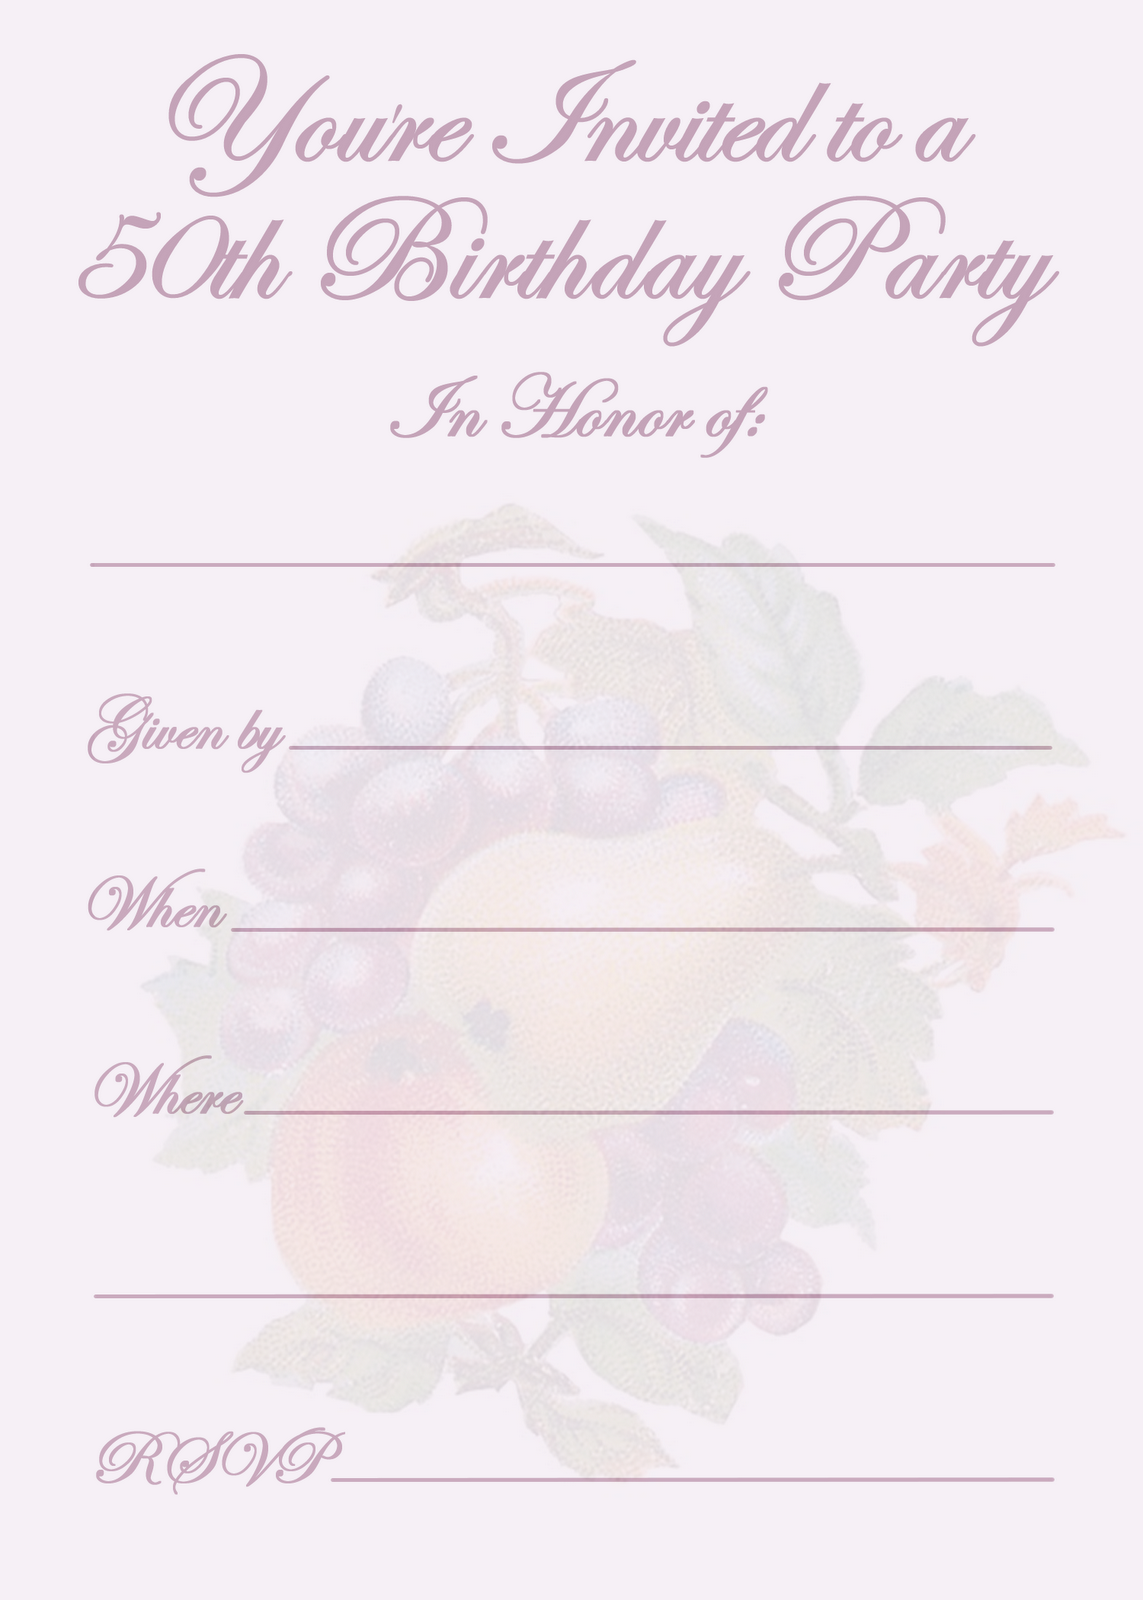 invitiation template - 50th birthday invitations templates